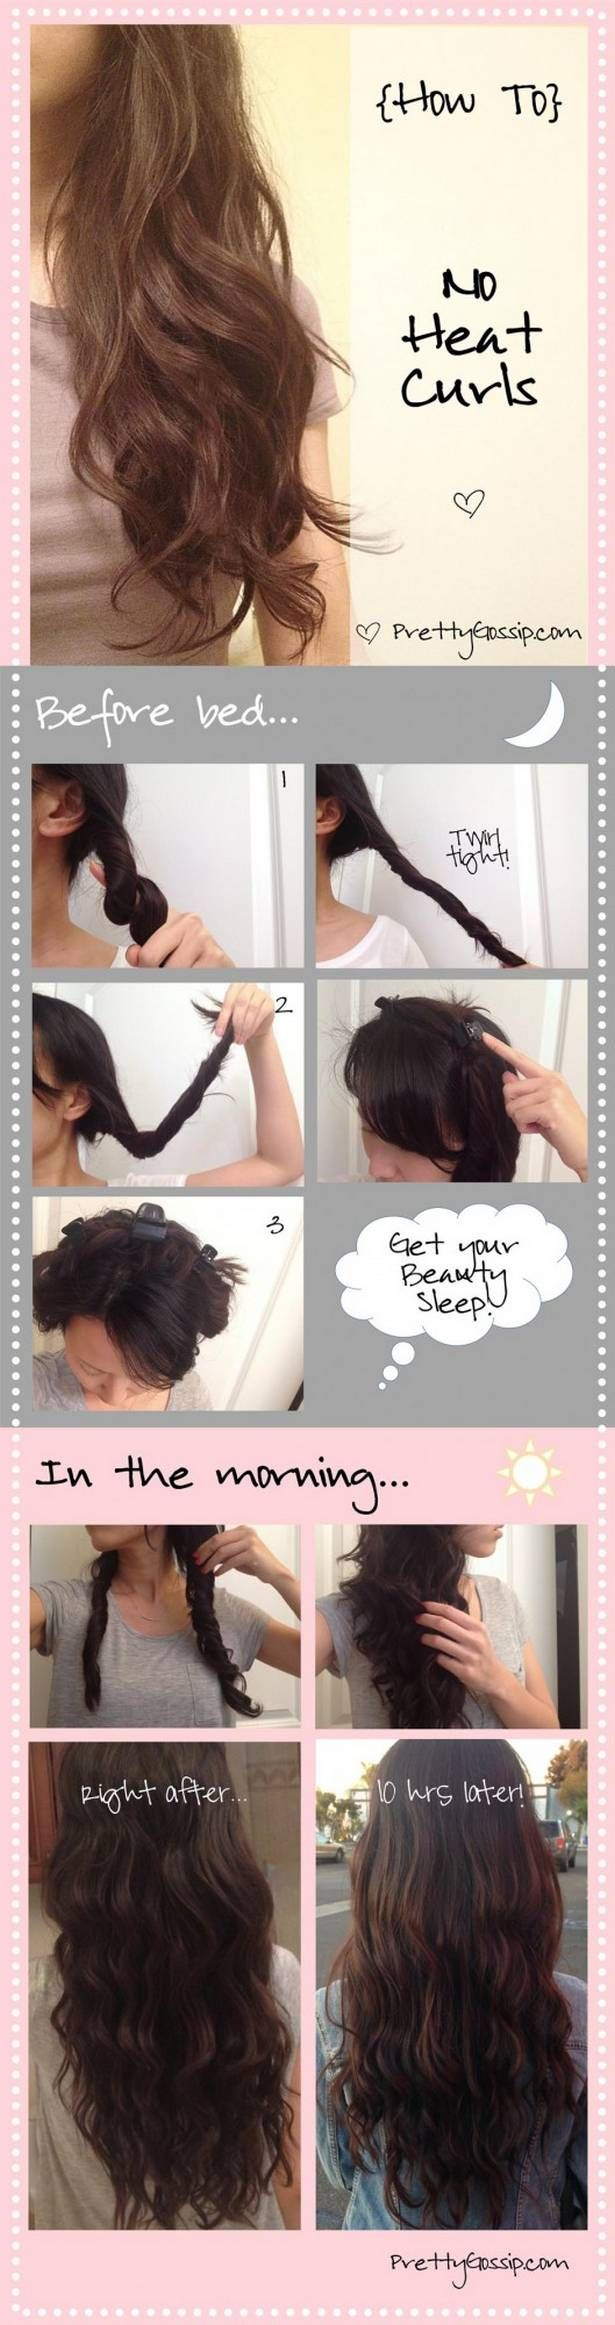 http://healthc.net/15-fantastic-tutorials-for-stunning-summer-hairstyles/